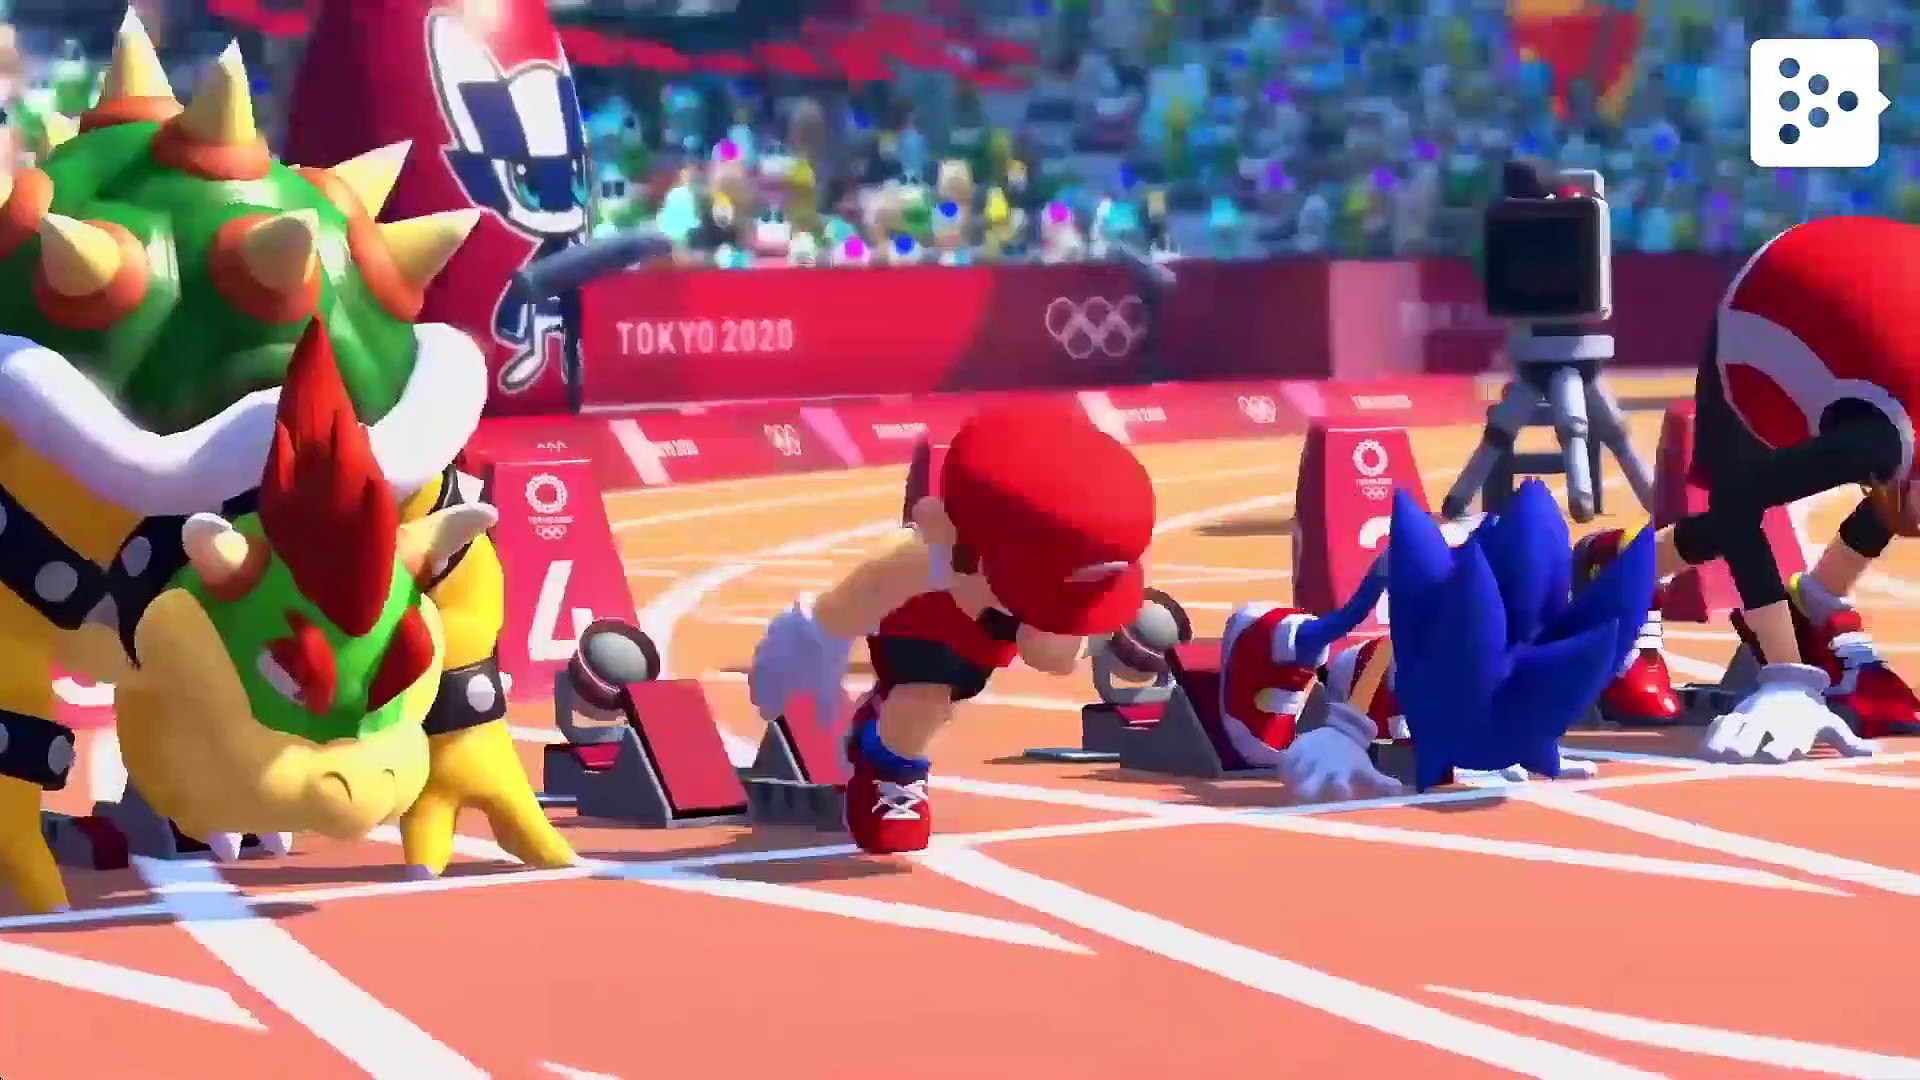 2D events are back in the Sonic and Mario at the Tokyo 2020 Olympics game